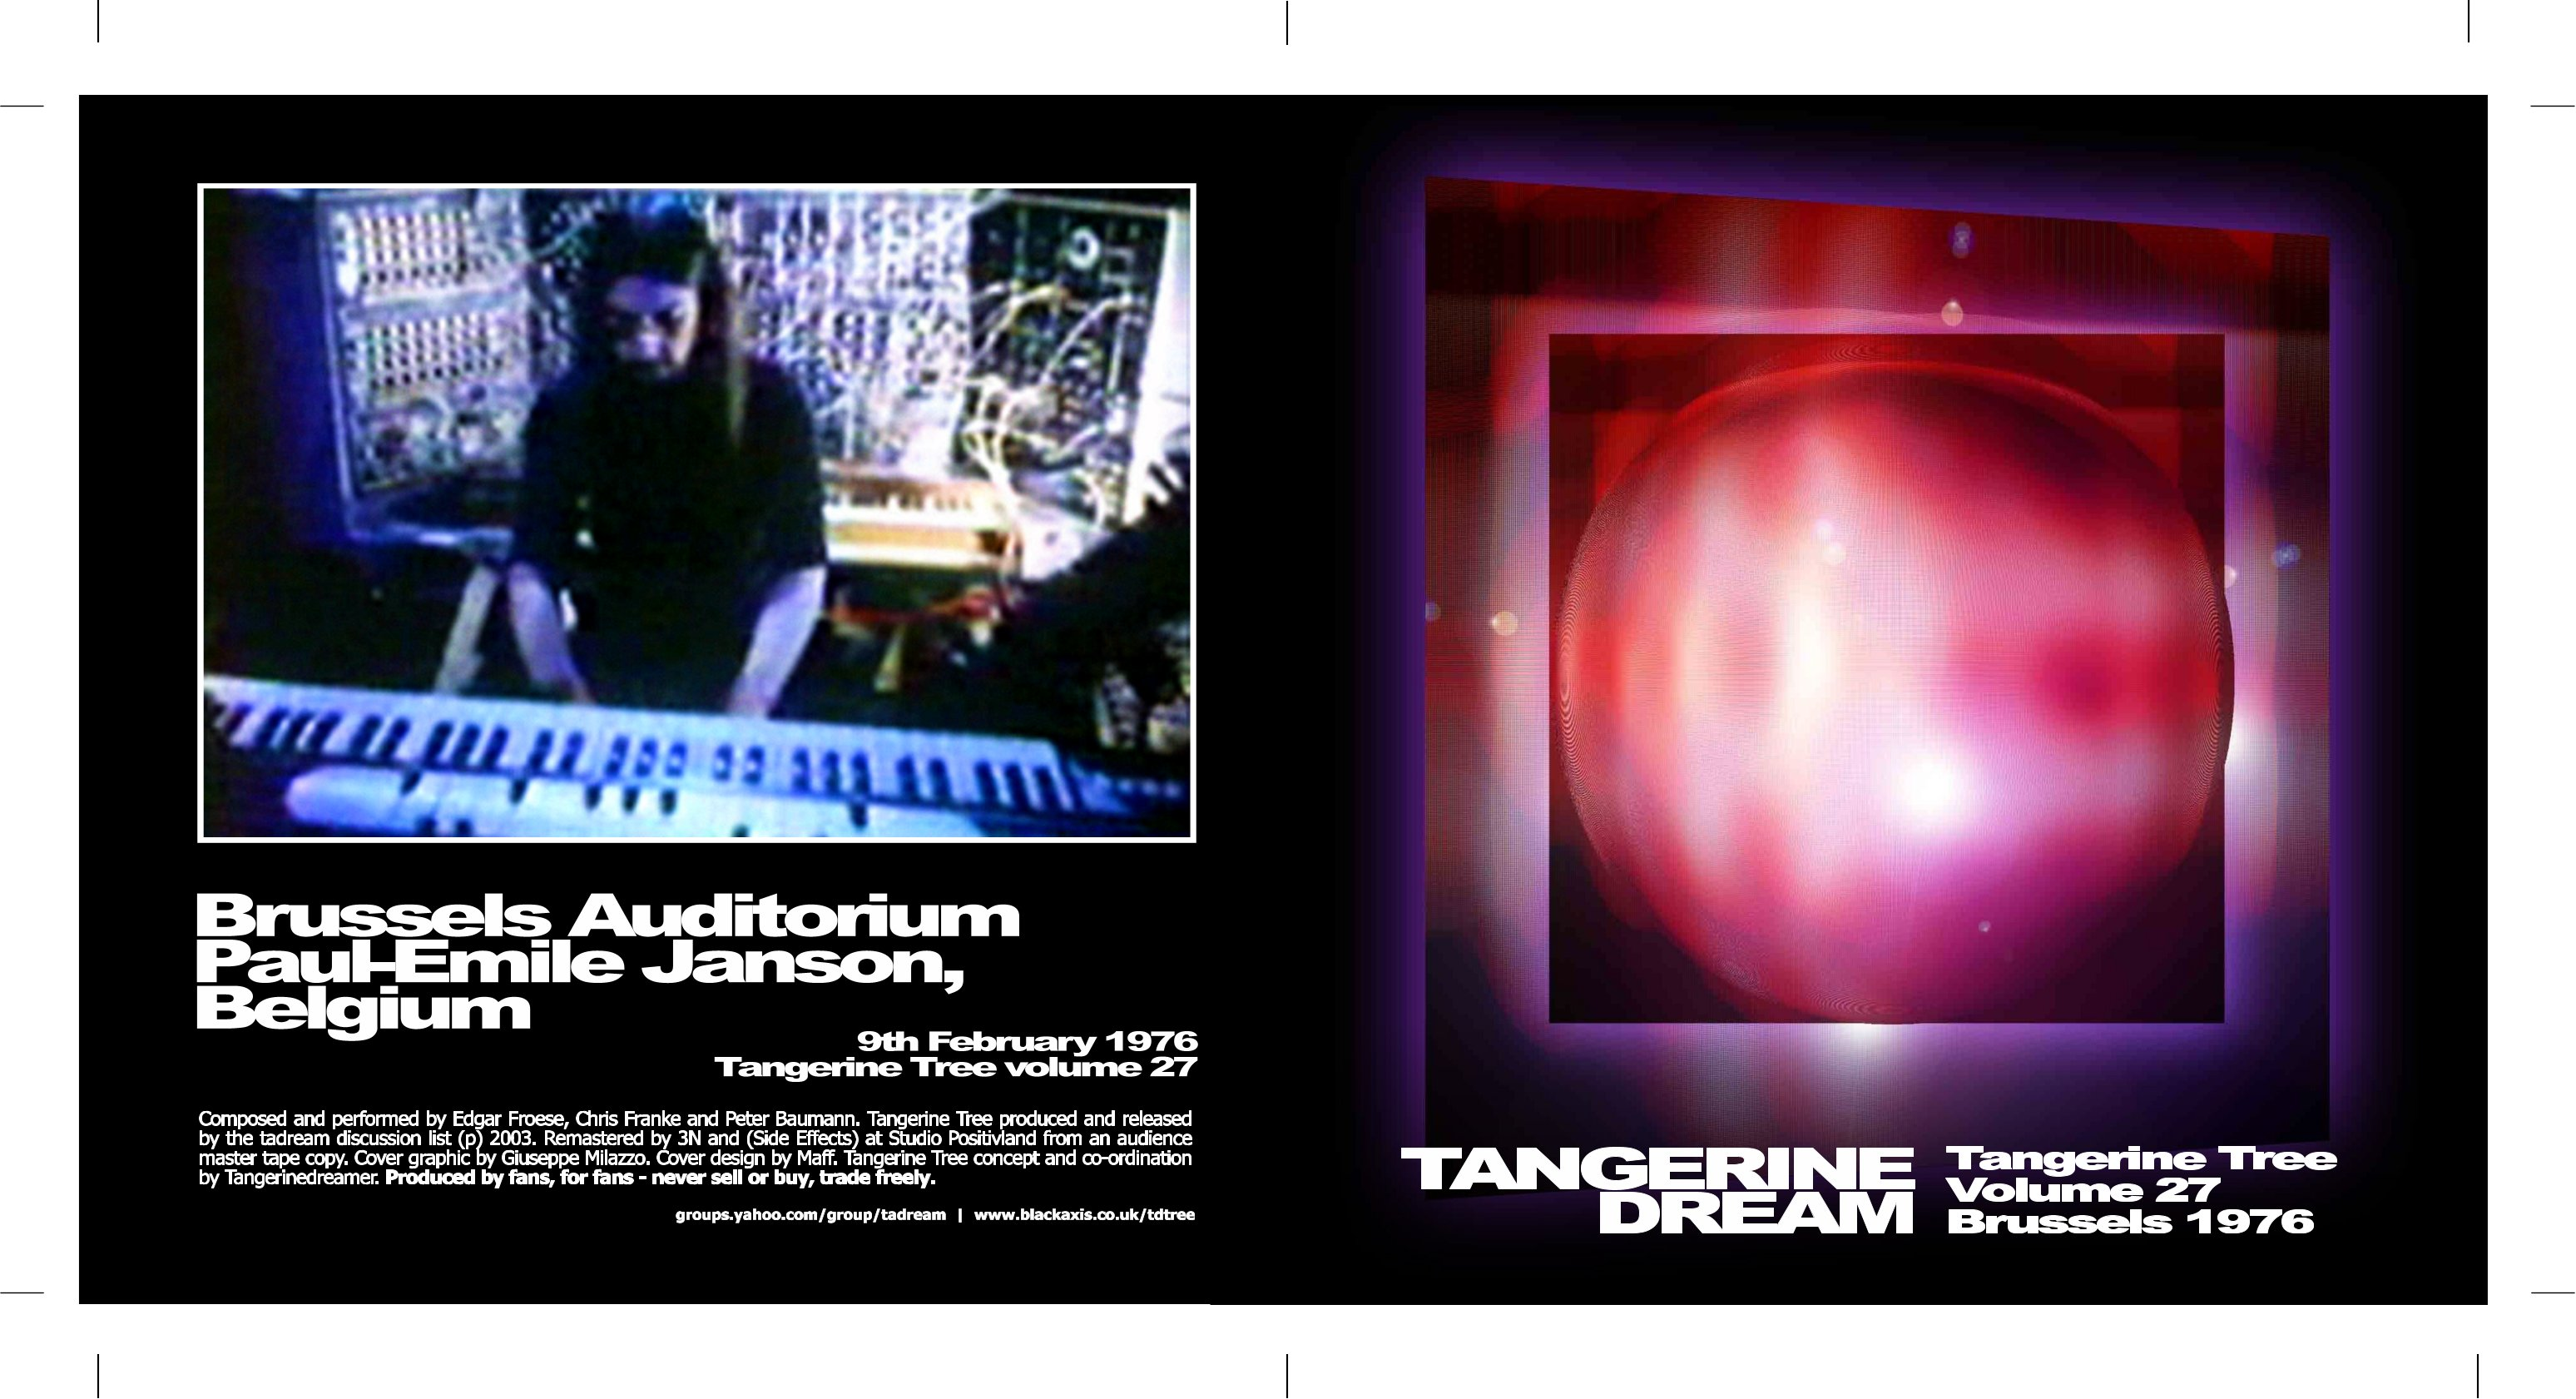 TangerineDream1976-02-09BrusselsAuditoriumBelgium (2).jpg